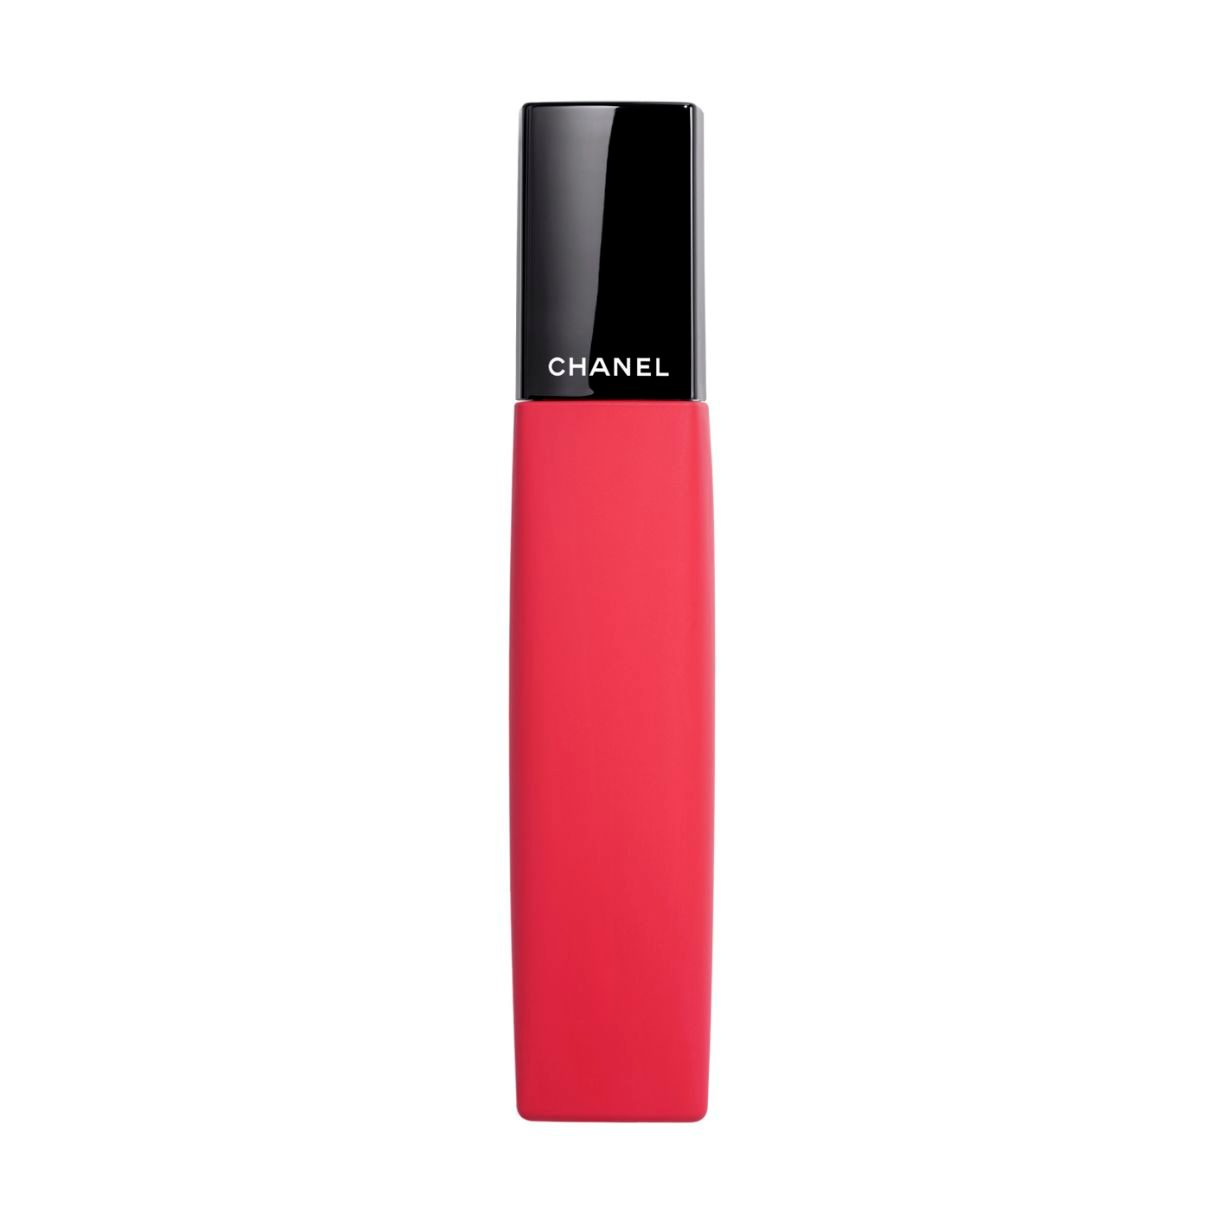 ROUGE ALLURE LIQUID POWDER MATTE LIPPENSTIFT MET EEN SOFT FOCUS EFFECT